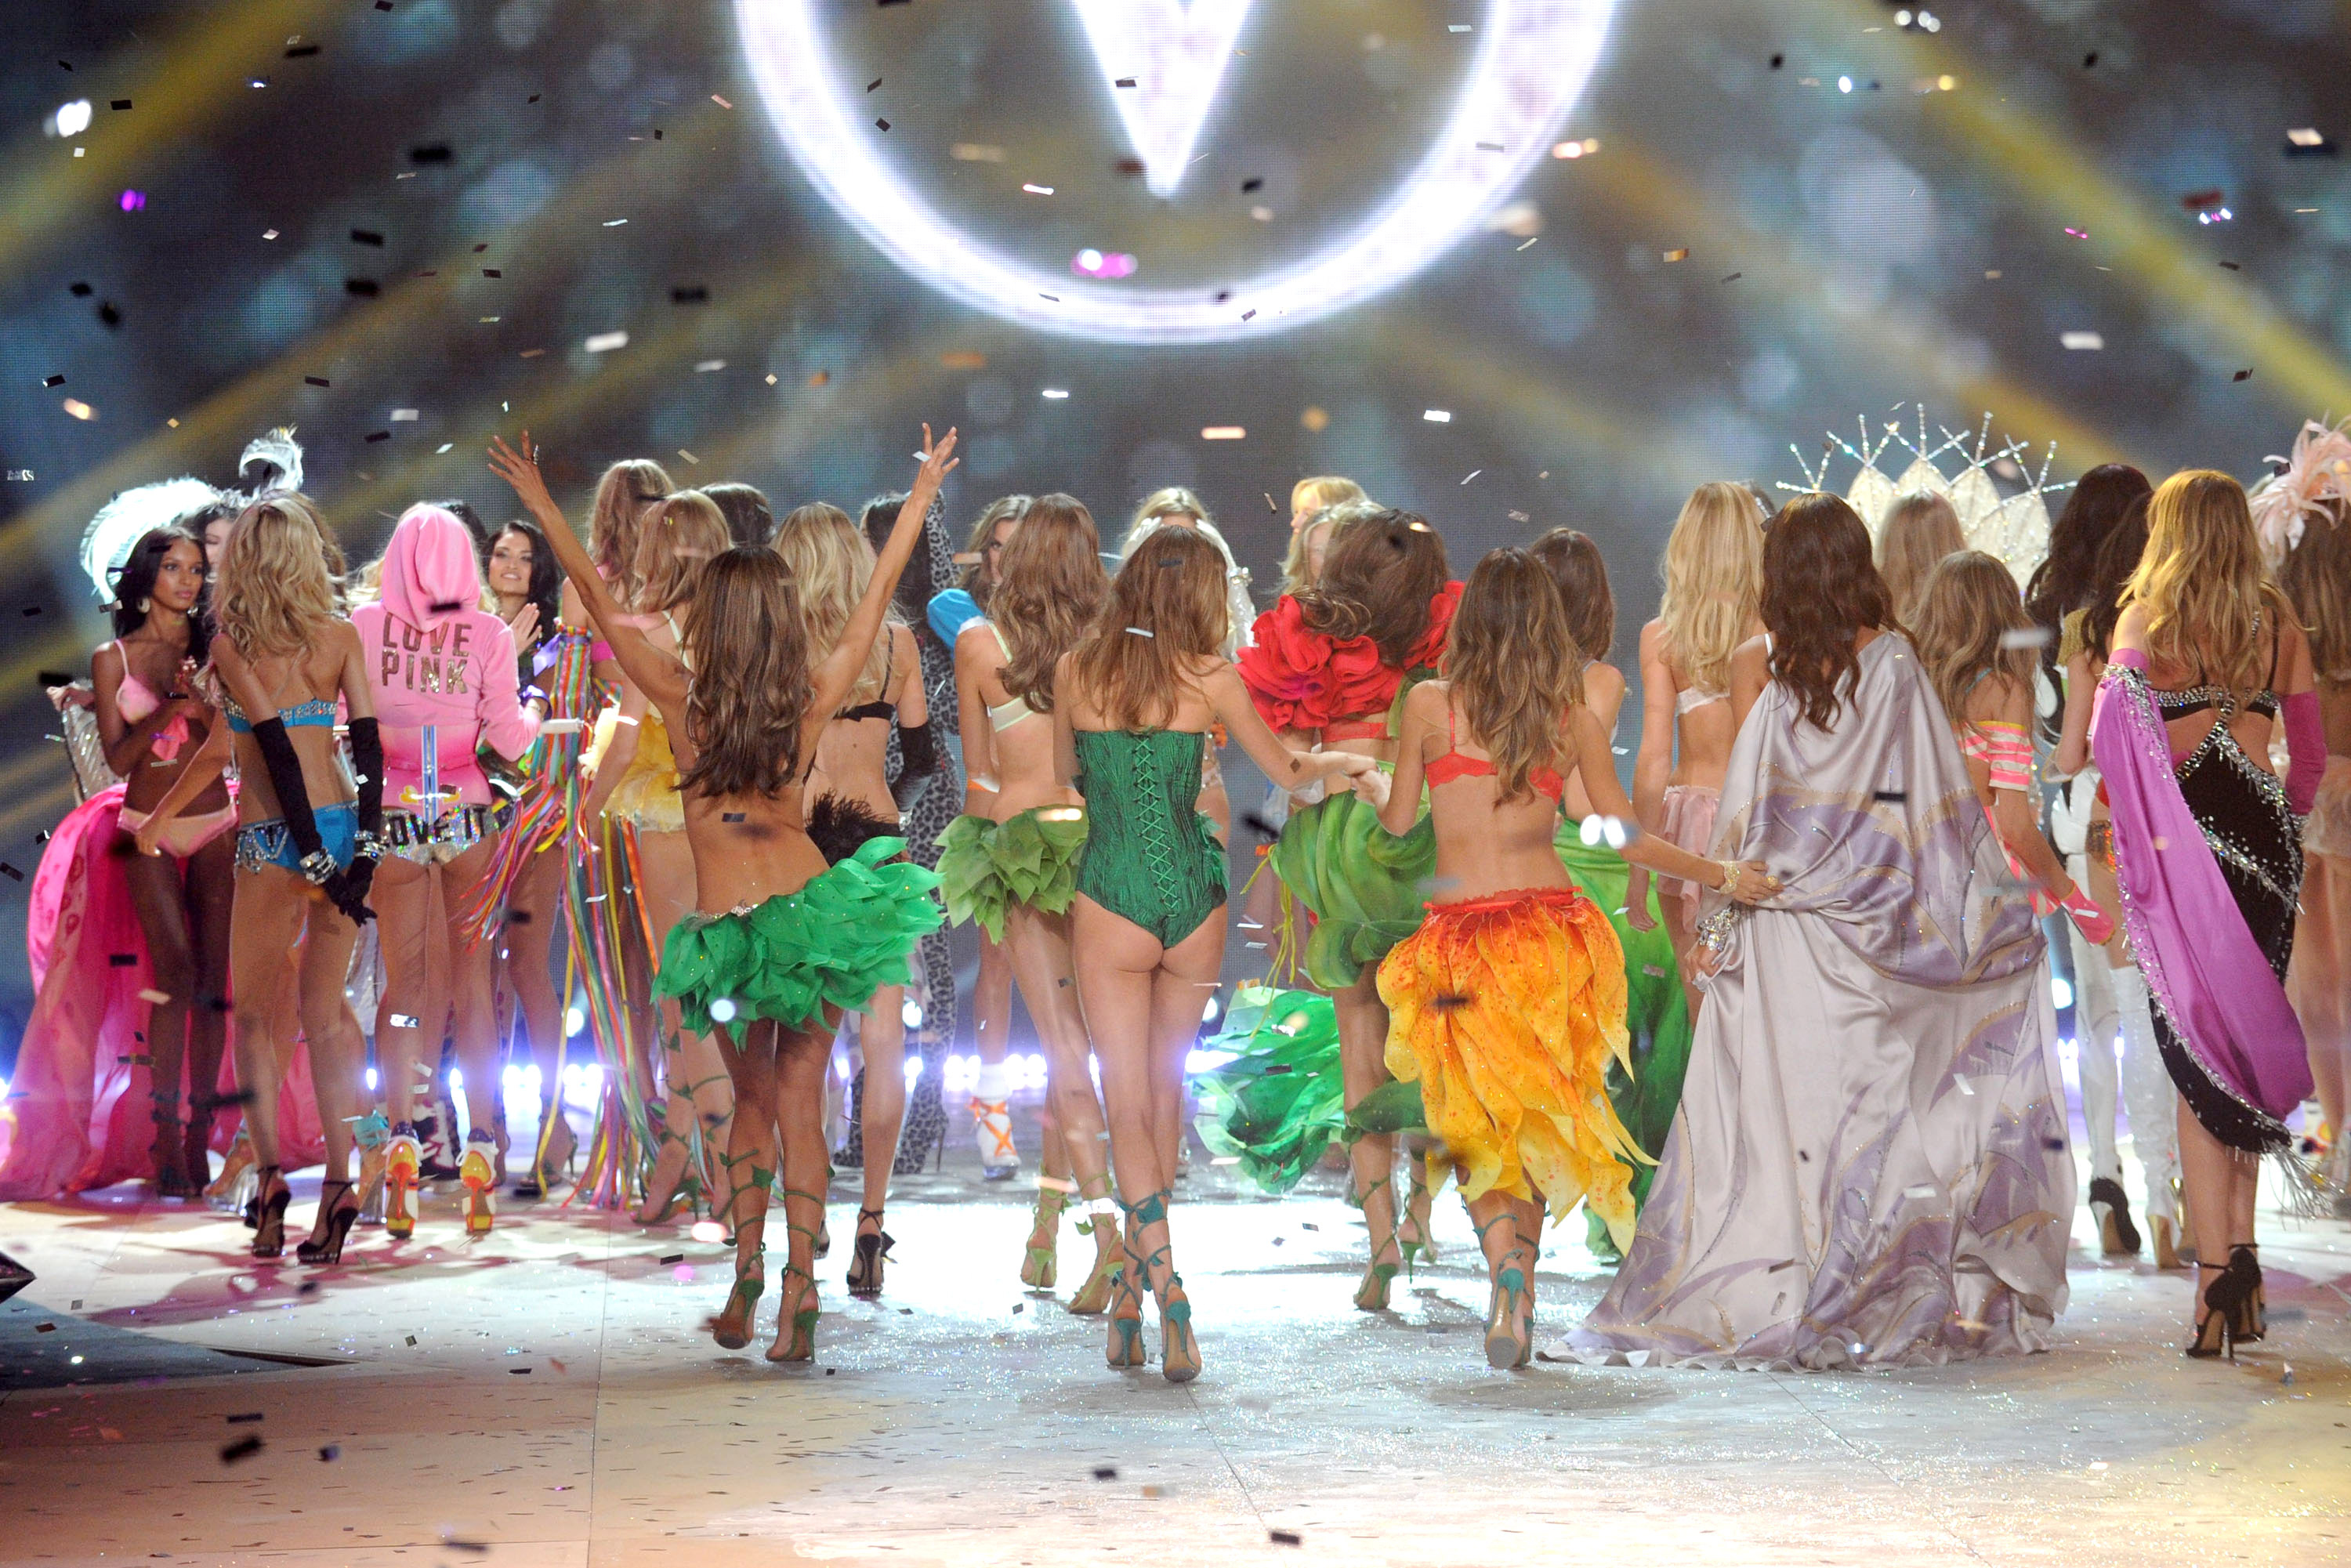 A Sneak Peek at the 2012 Victoria's Secret Fashion Show!